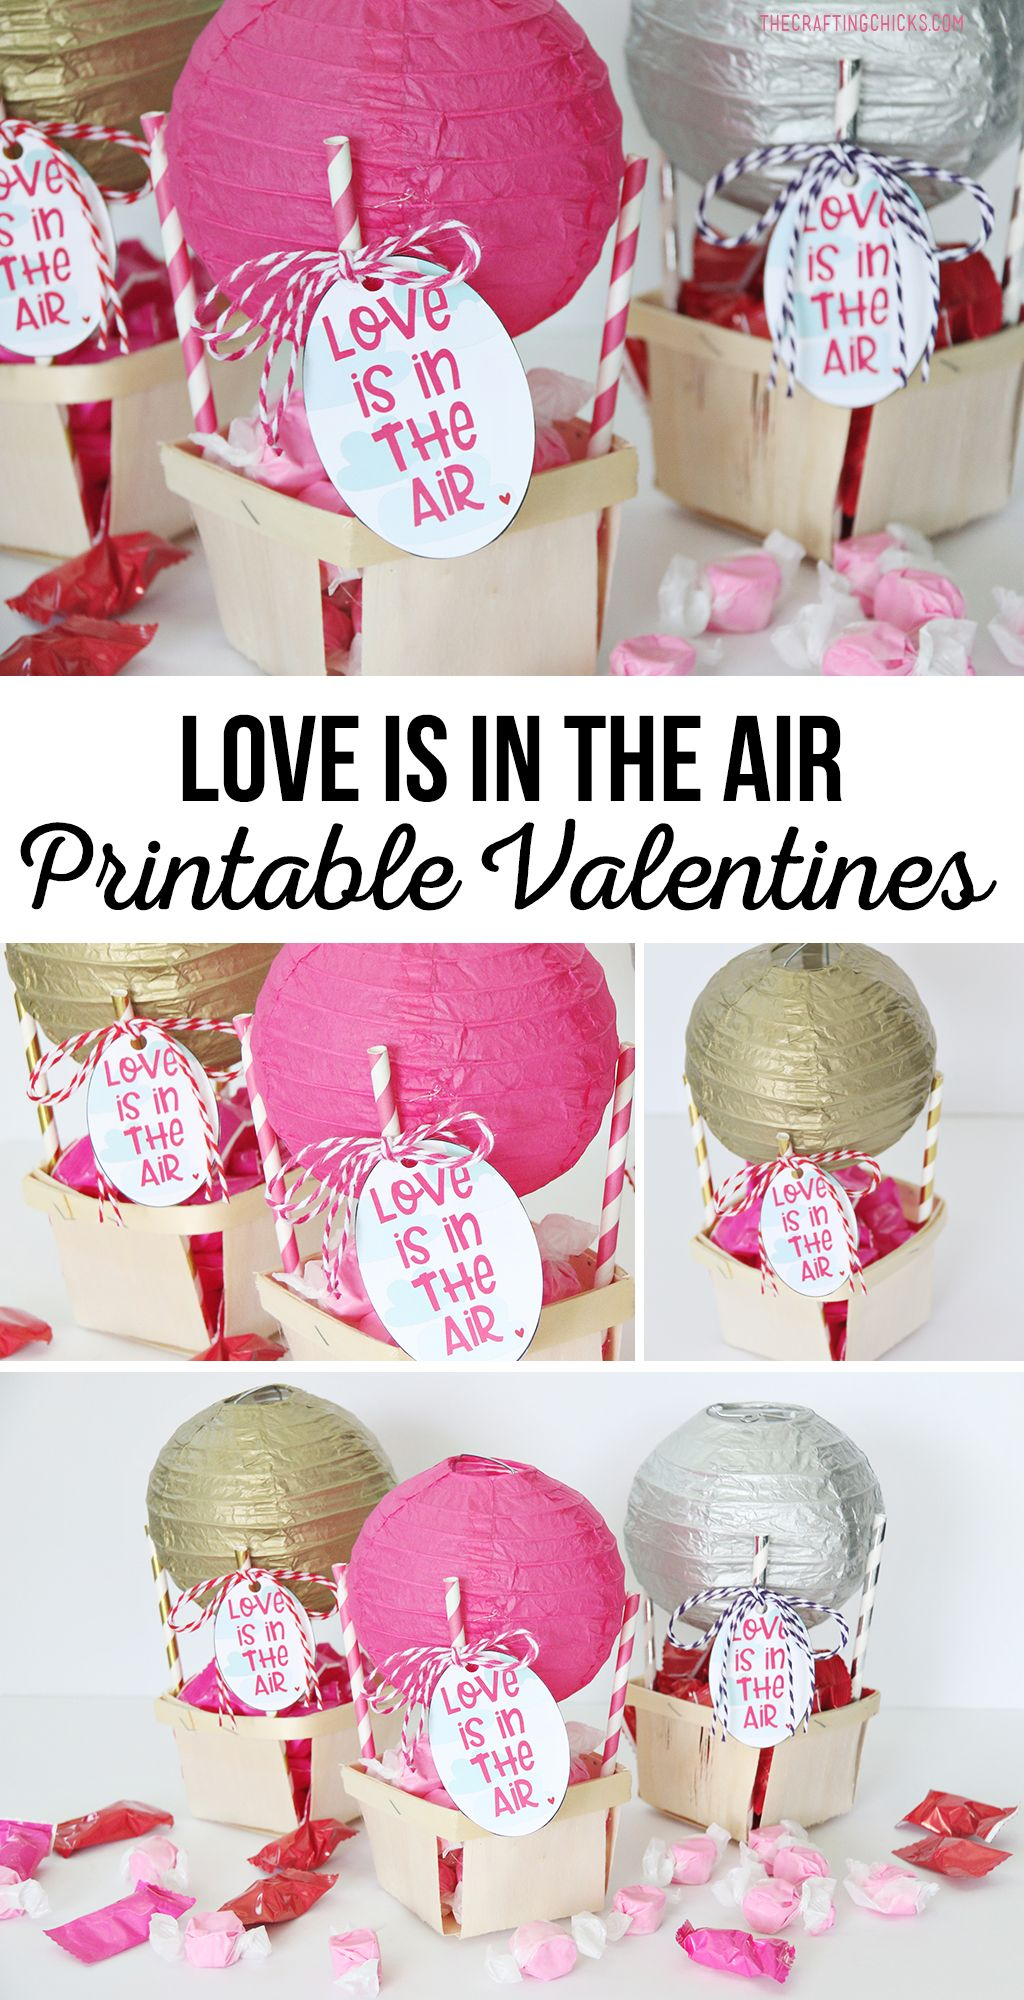 Love is in the Air Printable Valentine Tag | Hot air balloons, Air ...